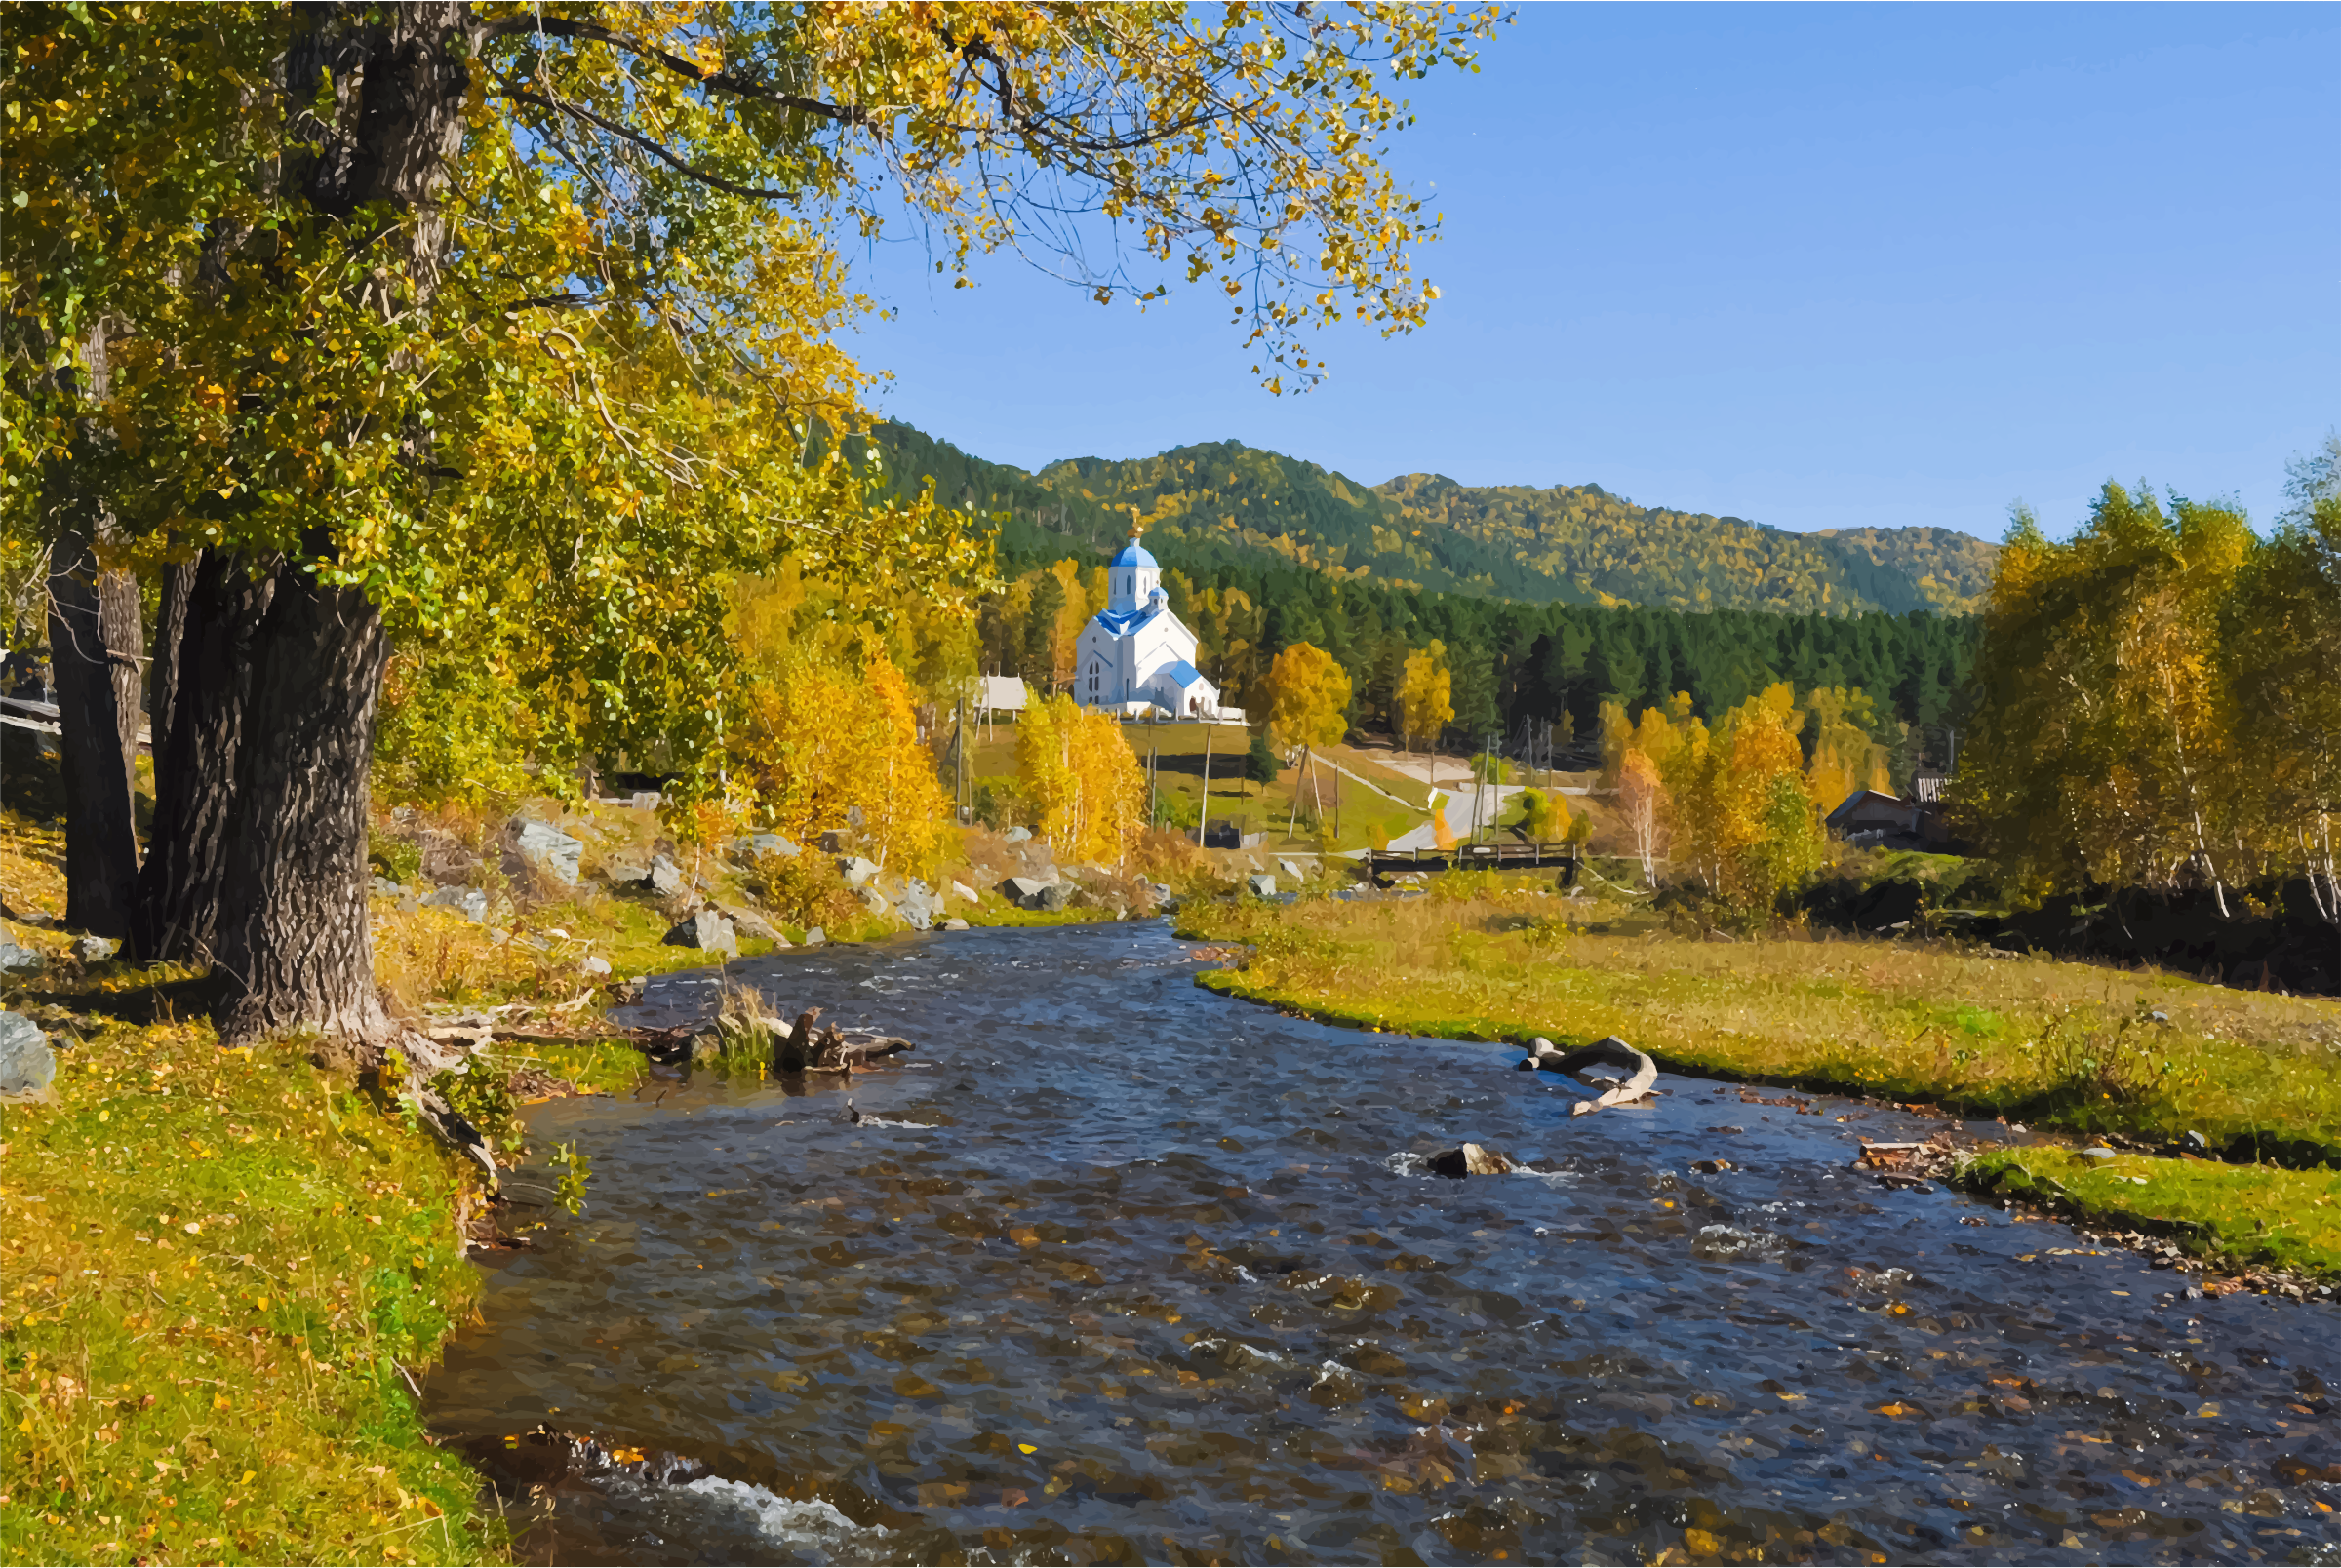 Orthodox Church In A Picturesque Landscape by GDJ